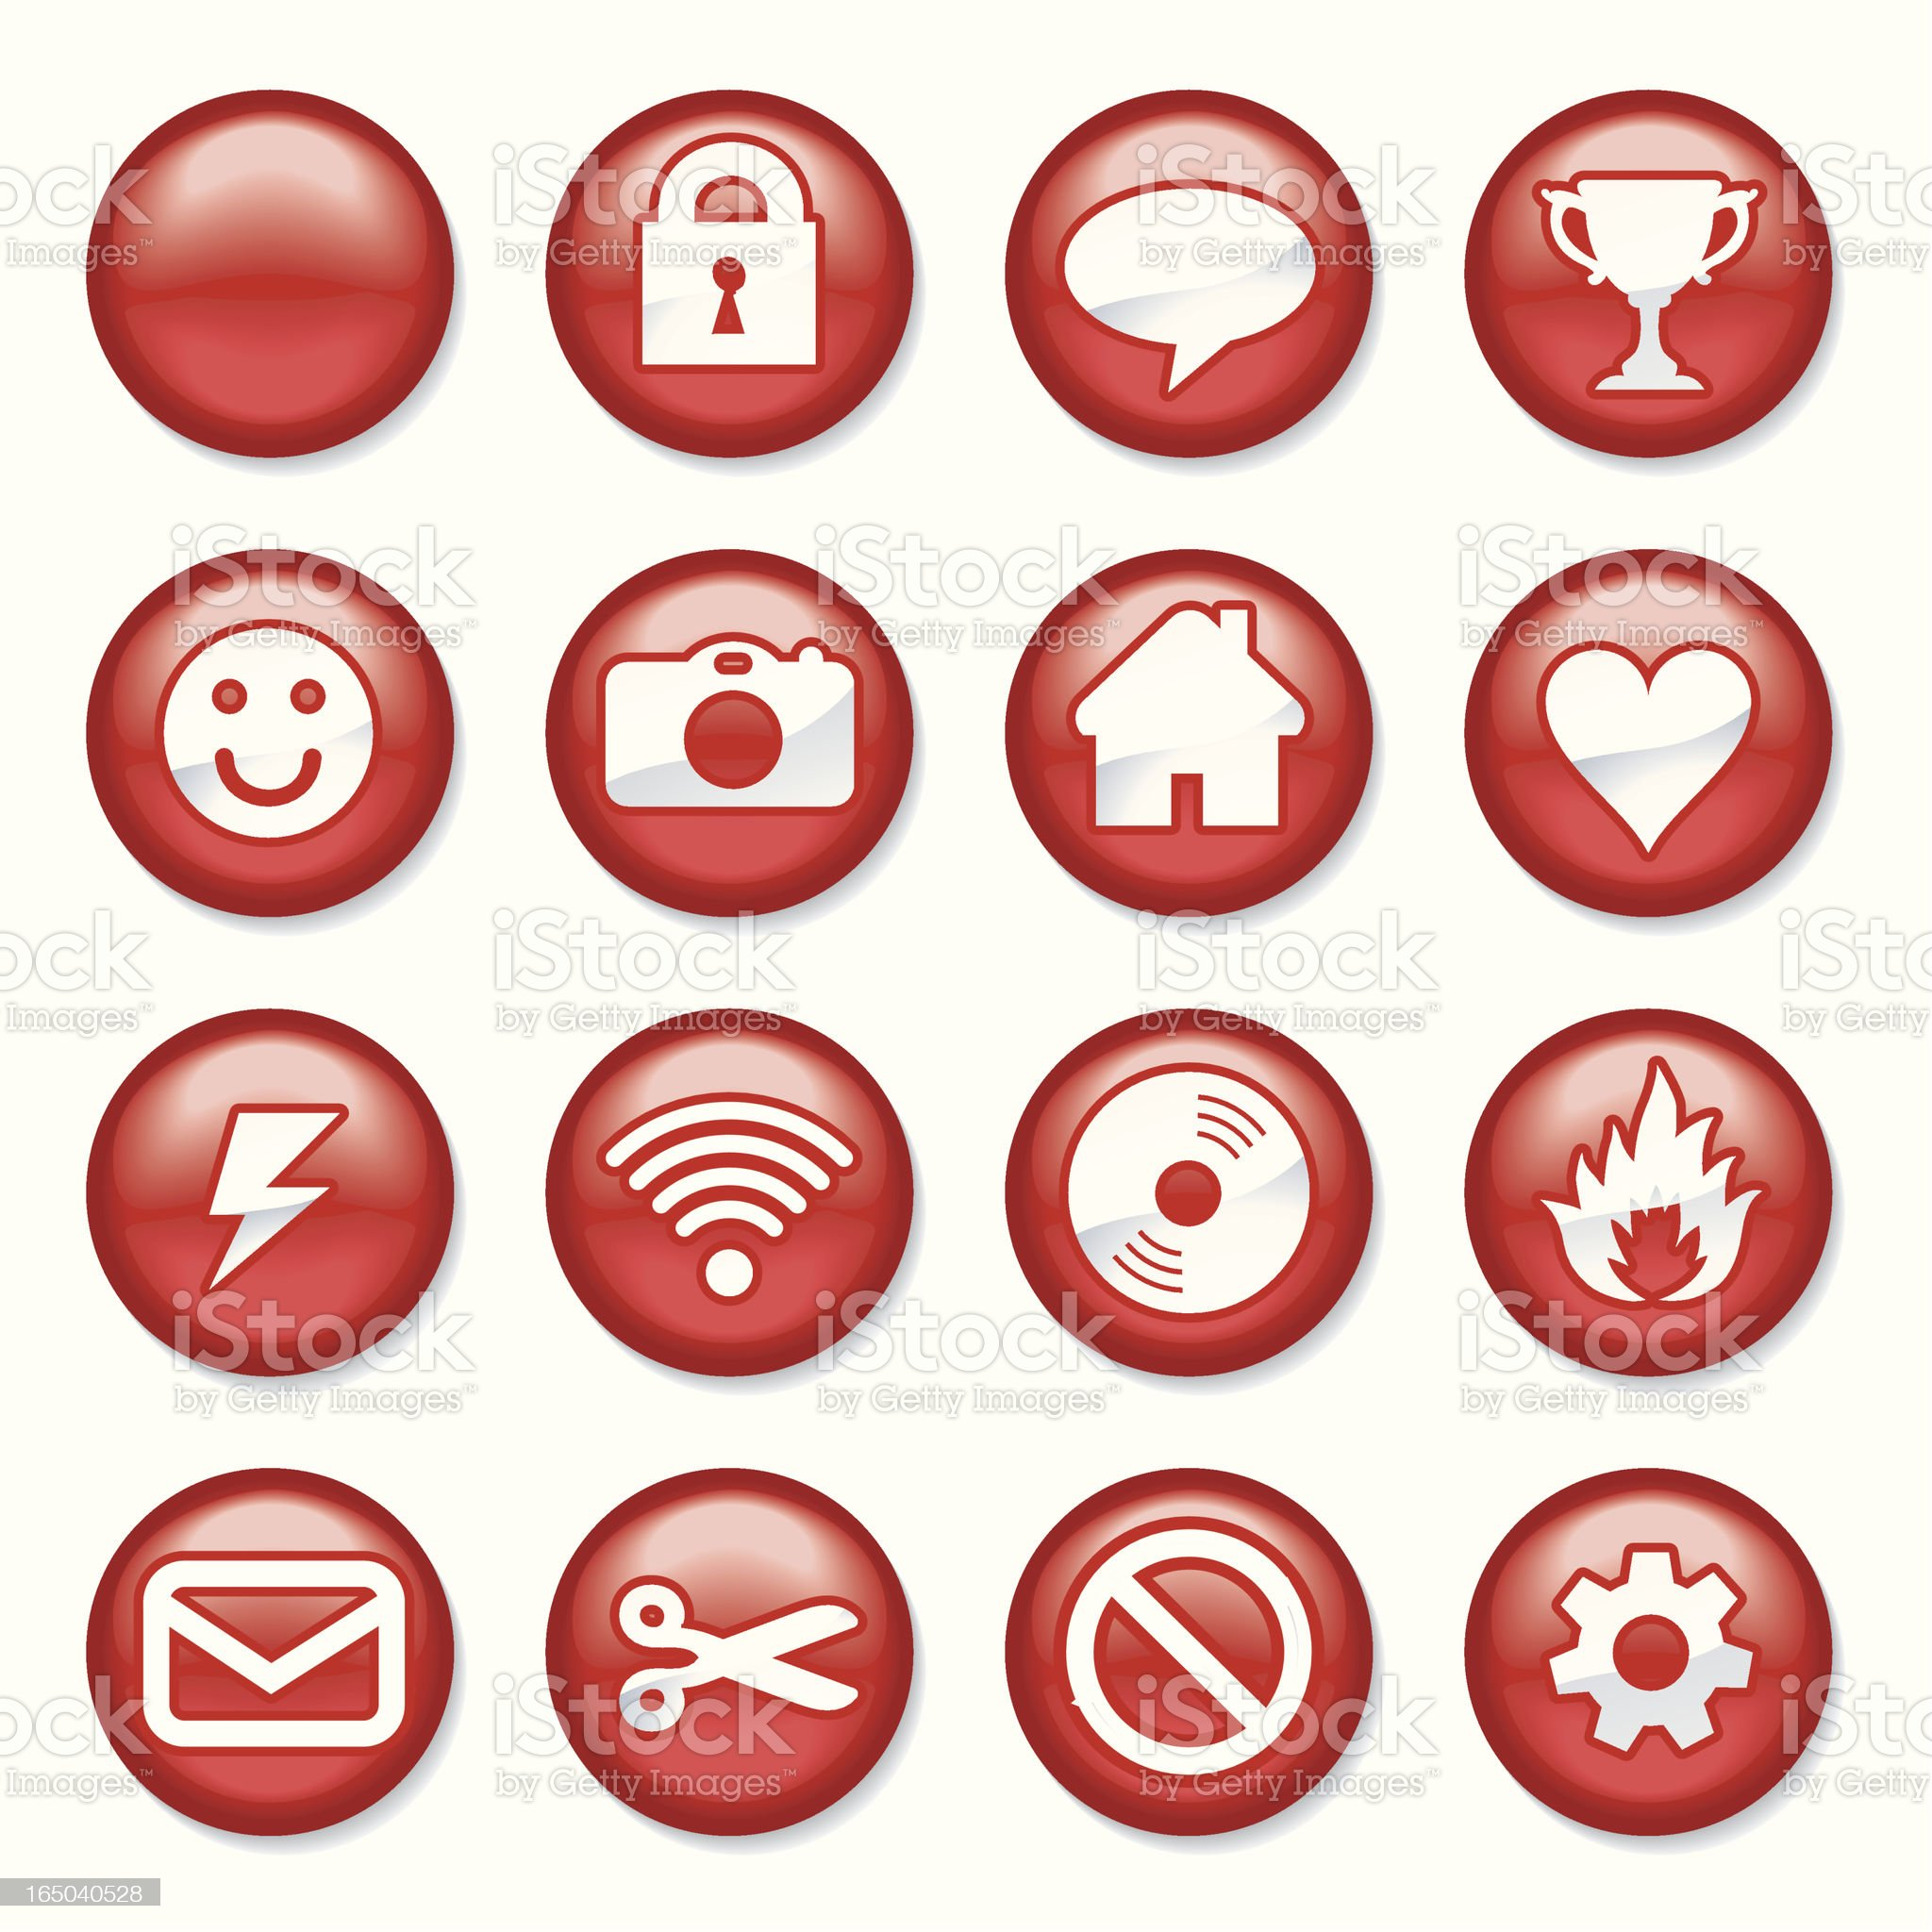 Red Plastic Buttons royalty-free stock vector art